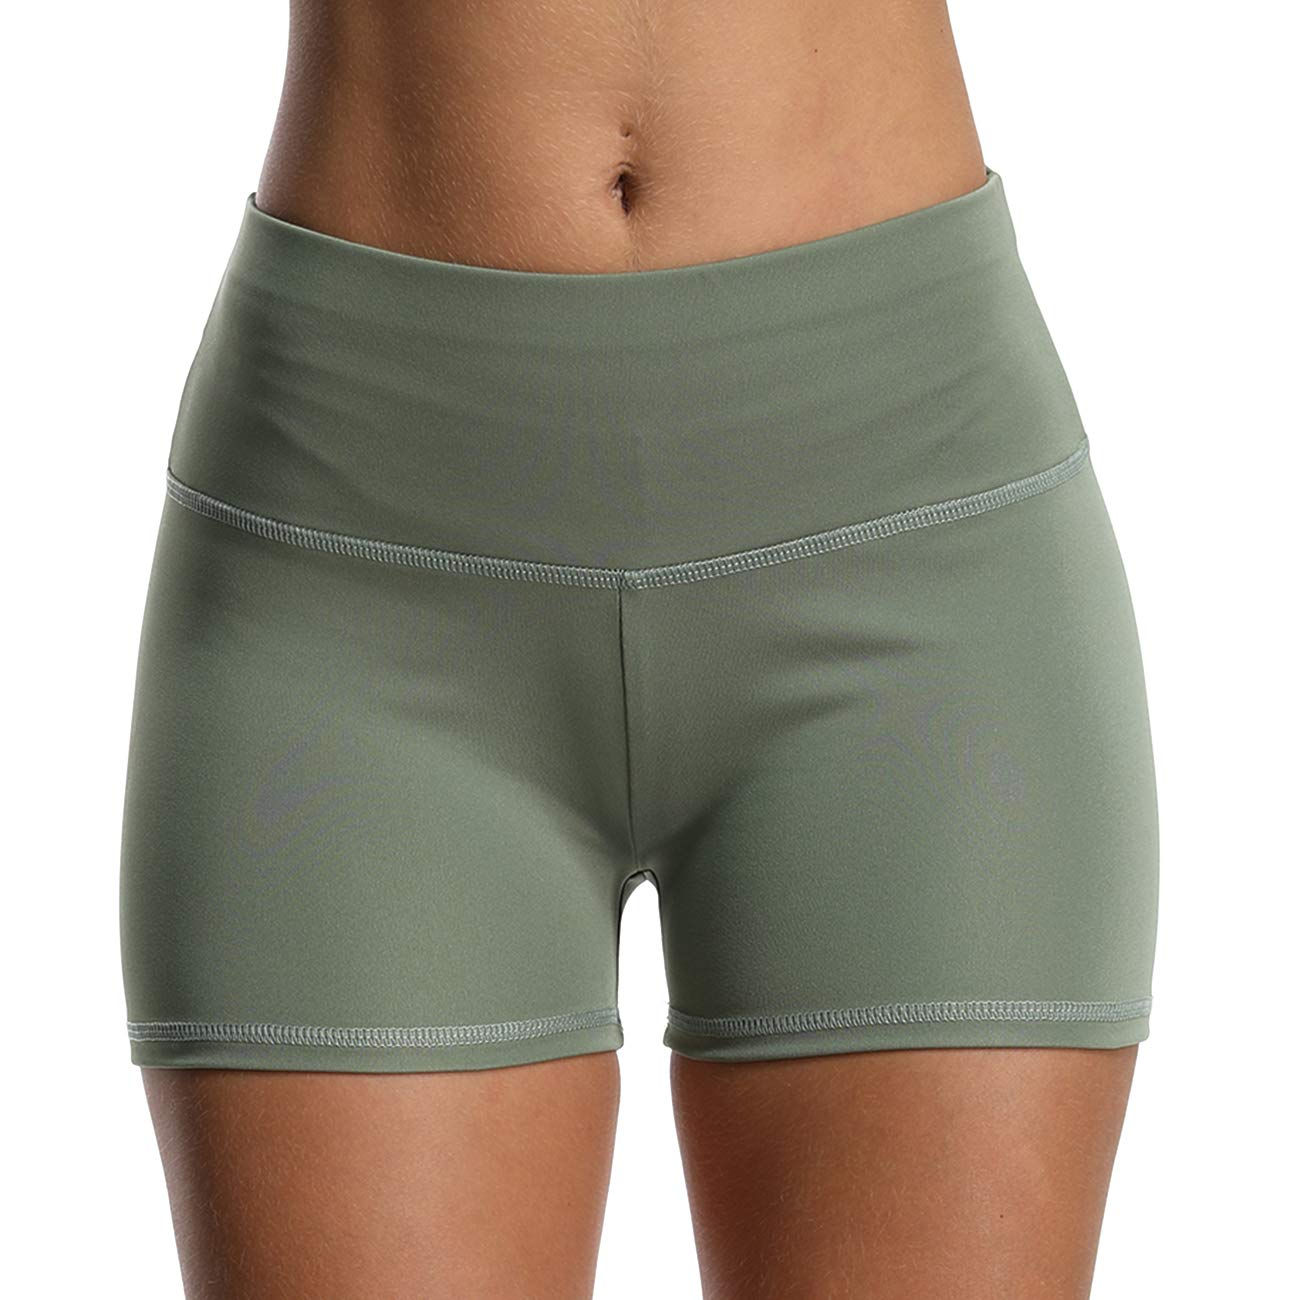 High Waist Compression Ruched Butt Lift Textured Workout Yoga Shorts for Women